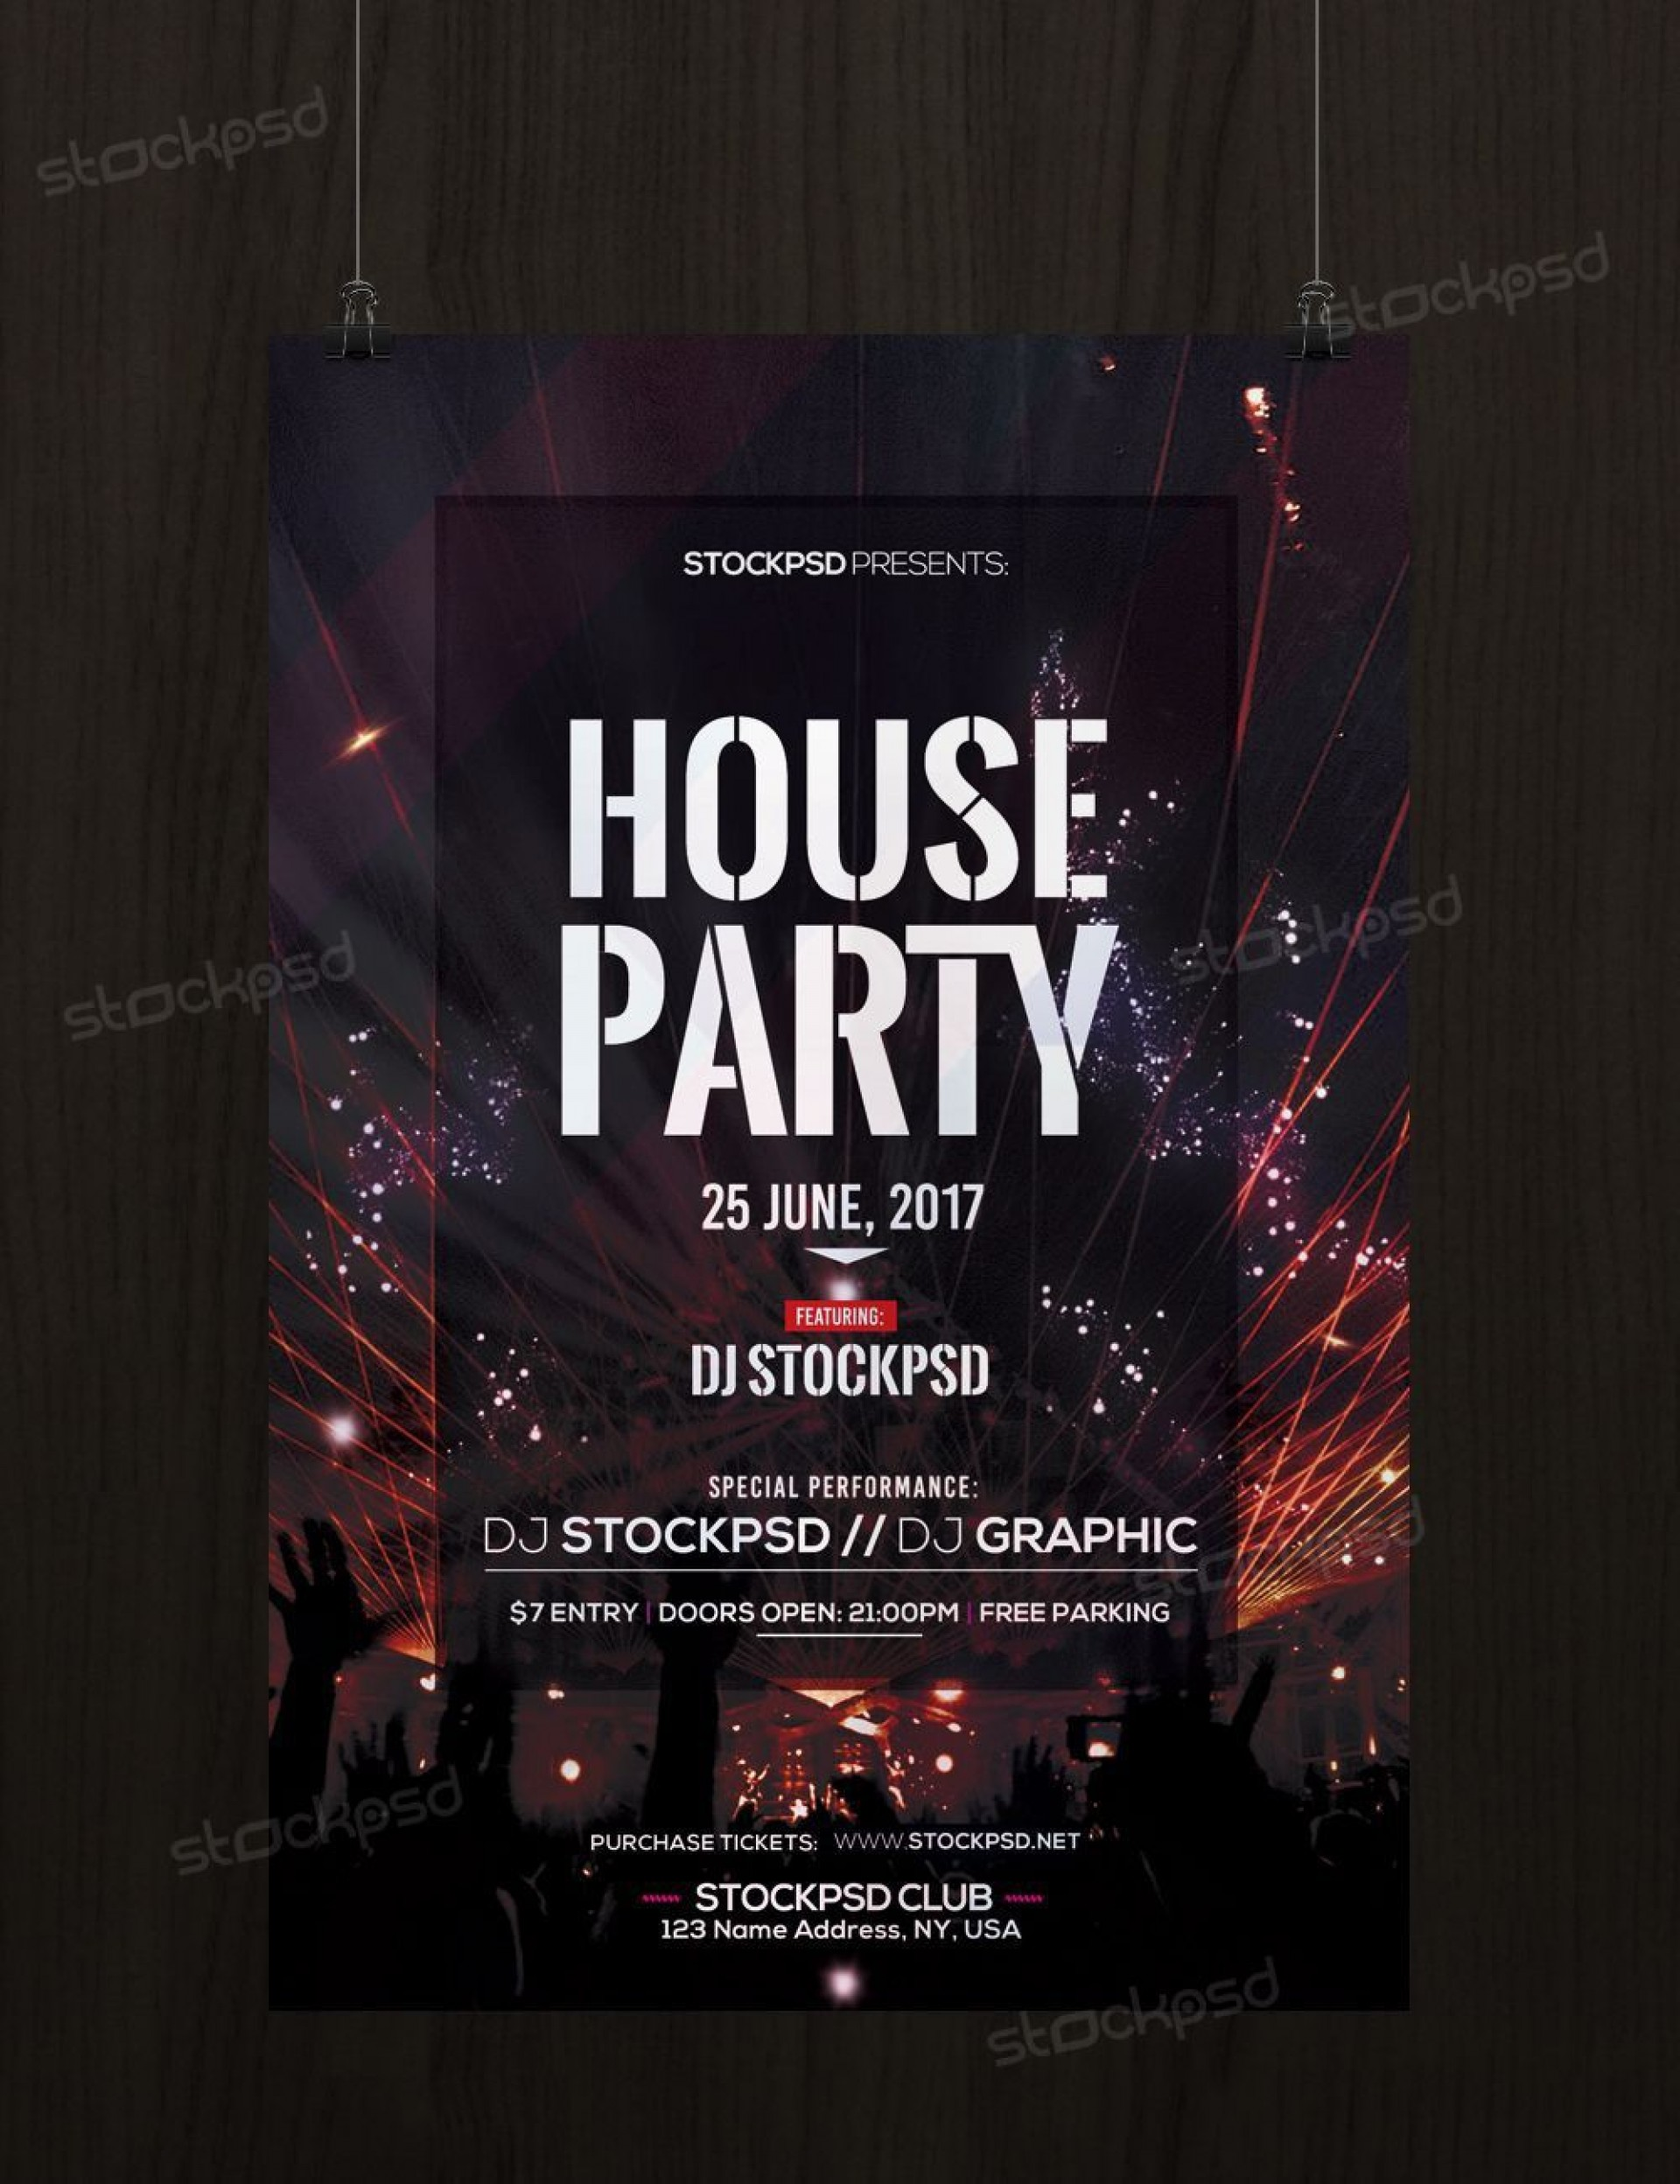 000 Magnificent Party Flyer Template Free Photoshop Idea  Birthday Psd Masquerade -1920